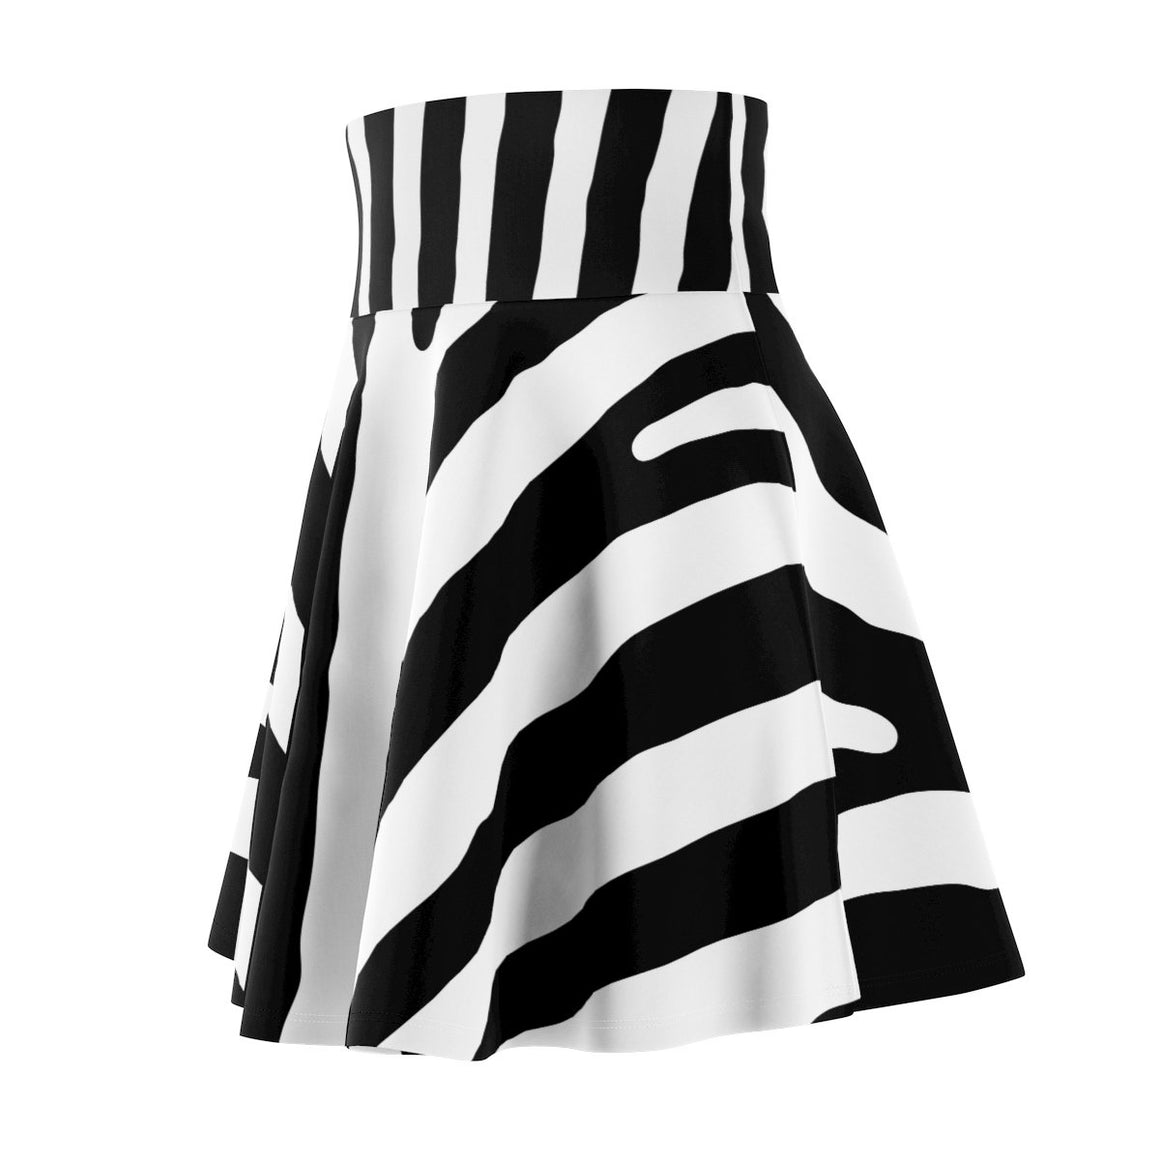 Fashionable Trendy Black or White Women's Skater Skirt-High Fashion Skater Skirt